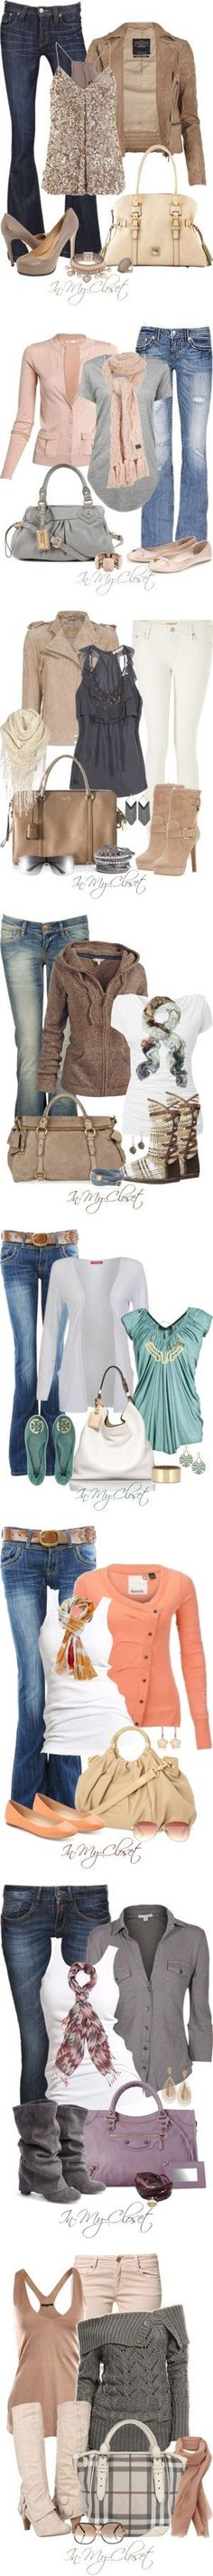 CUTE ... with boots I can walk in ;) FRIEND/FOLLOW ME ON FACEBOOK! https://www.facebook.com/ruthiecain great pin!